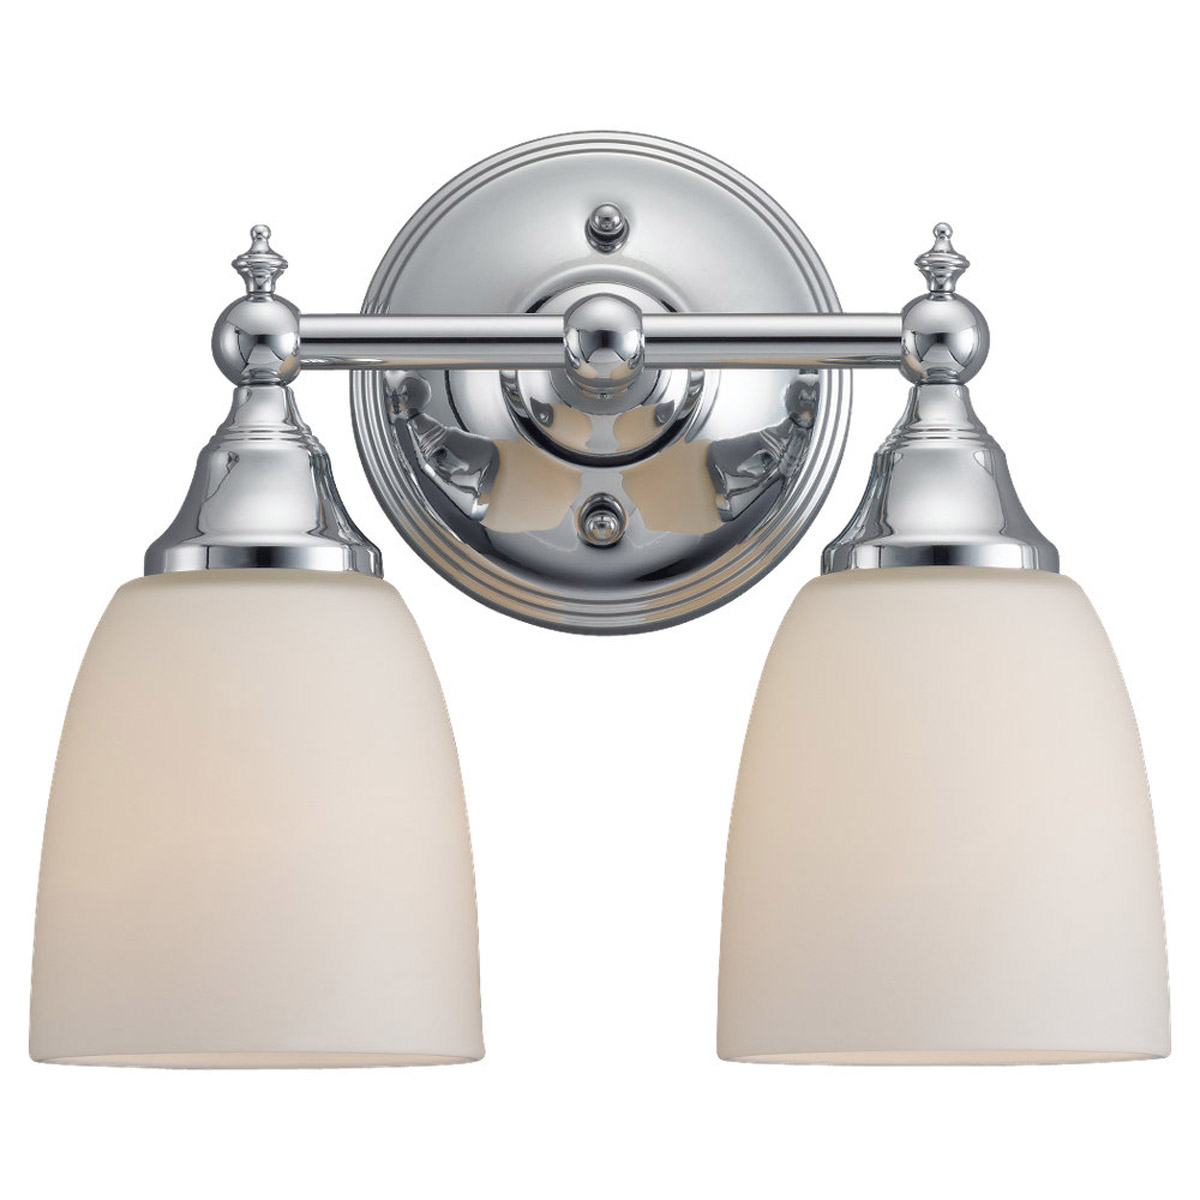 Sea Gull Lighting Finitude 2 Light Bath Vanity in Chrome 44616-05